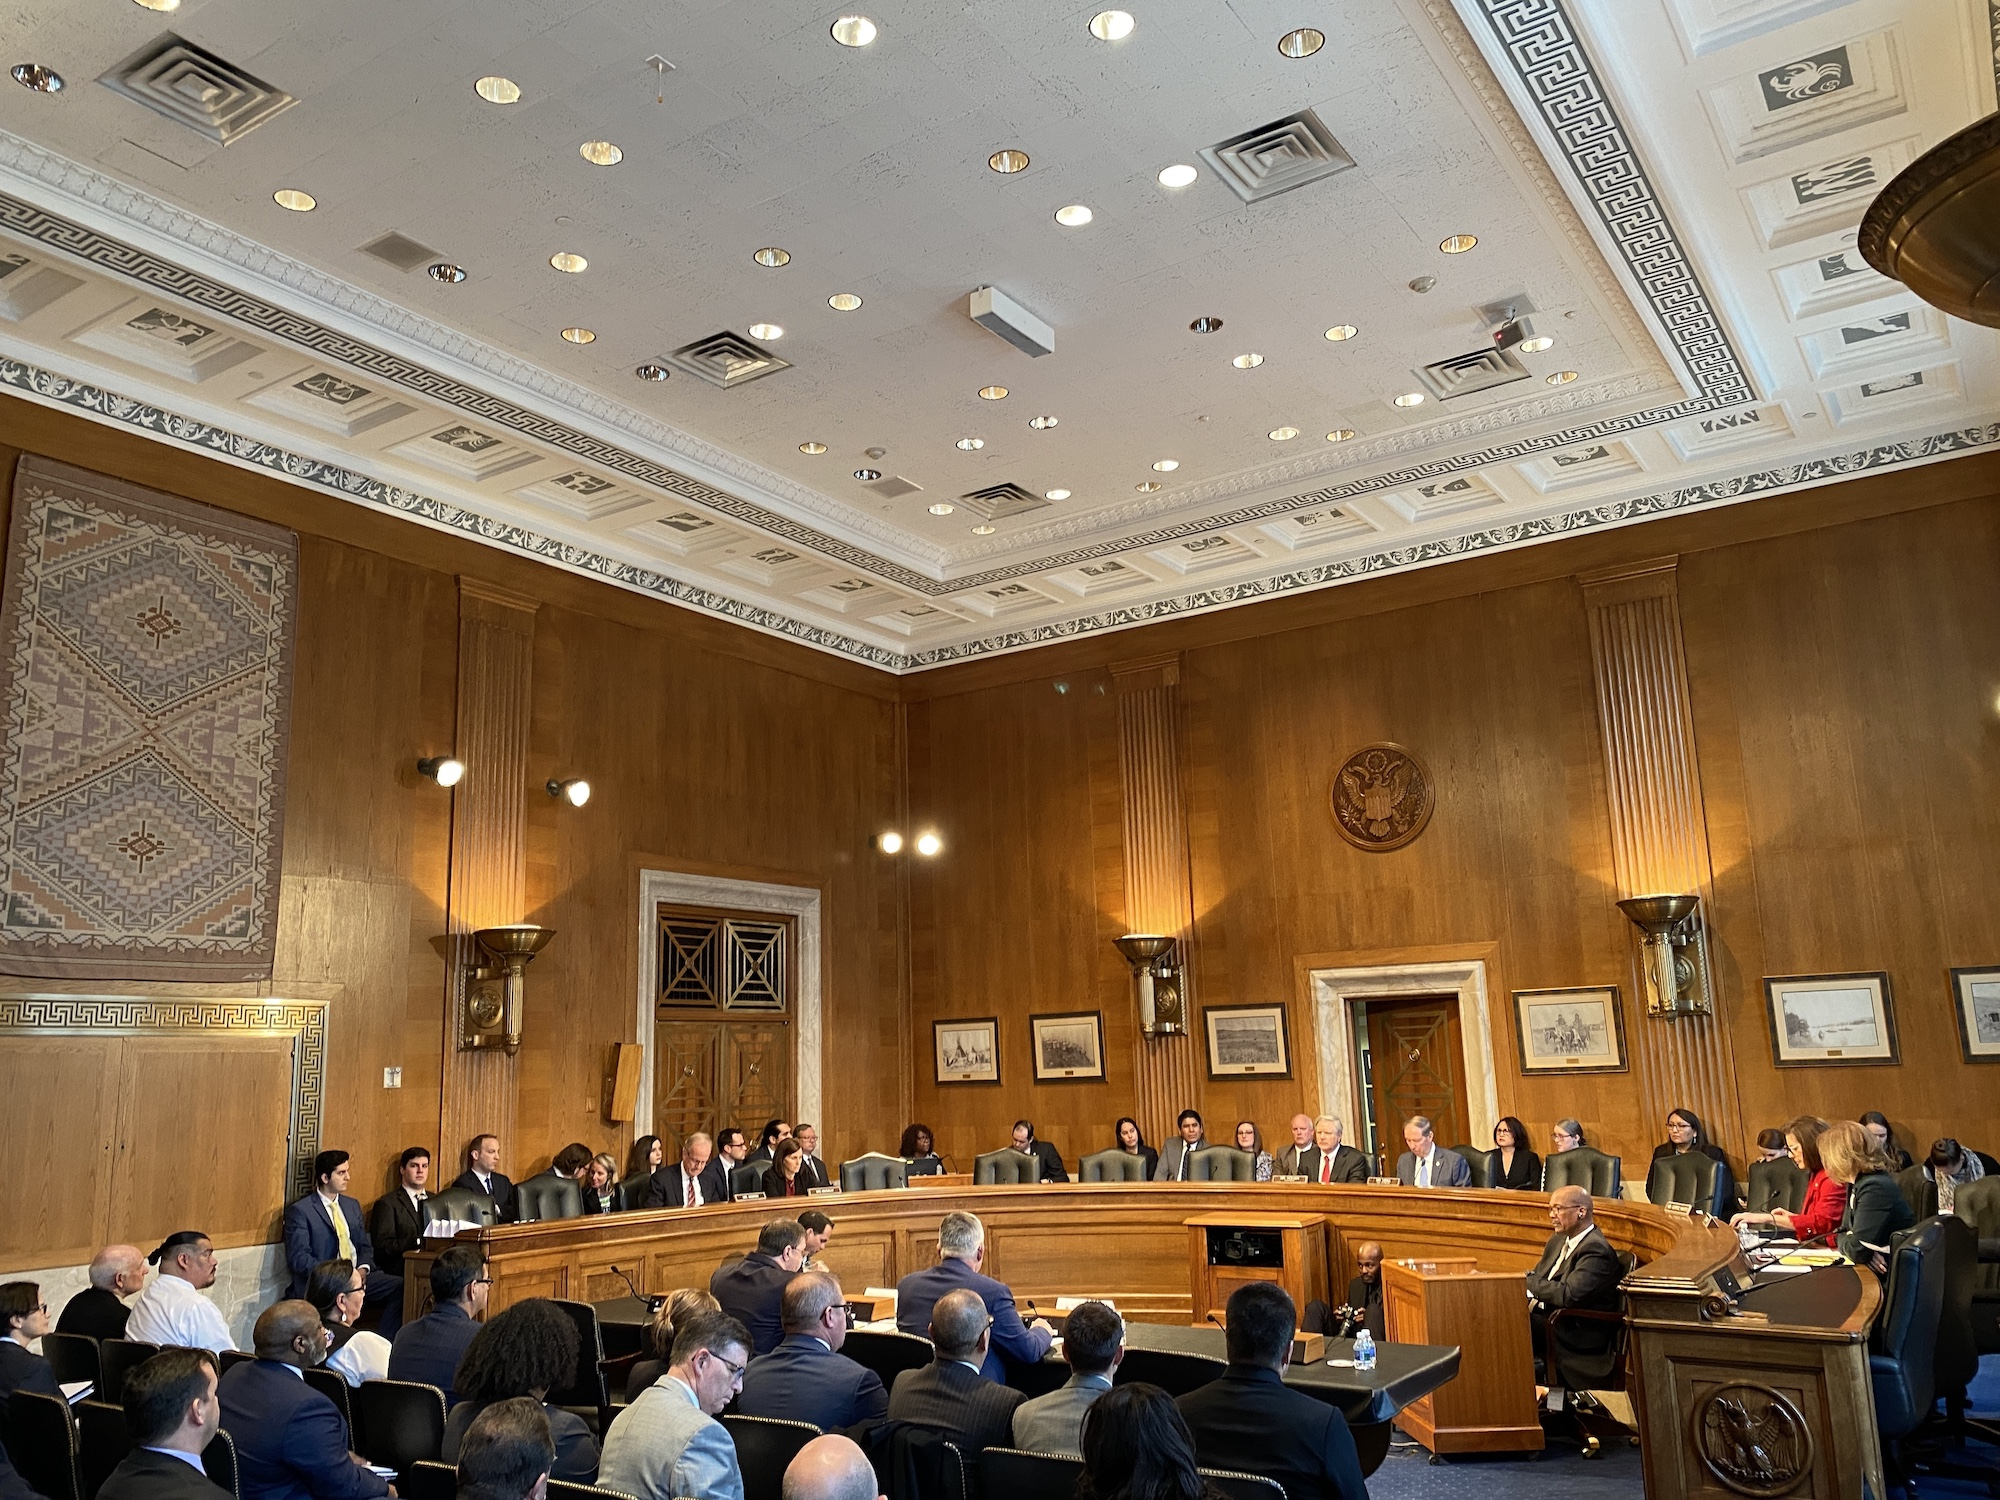 Senate Committee on Indian Affairs hosts business meeting and confirmation hearing